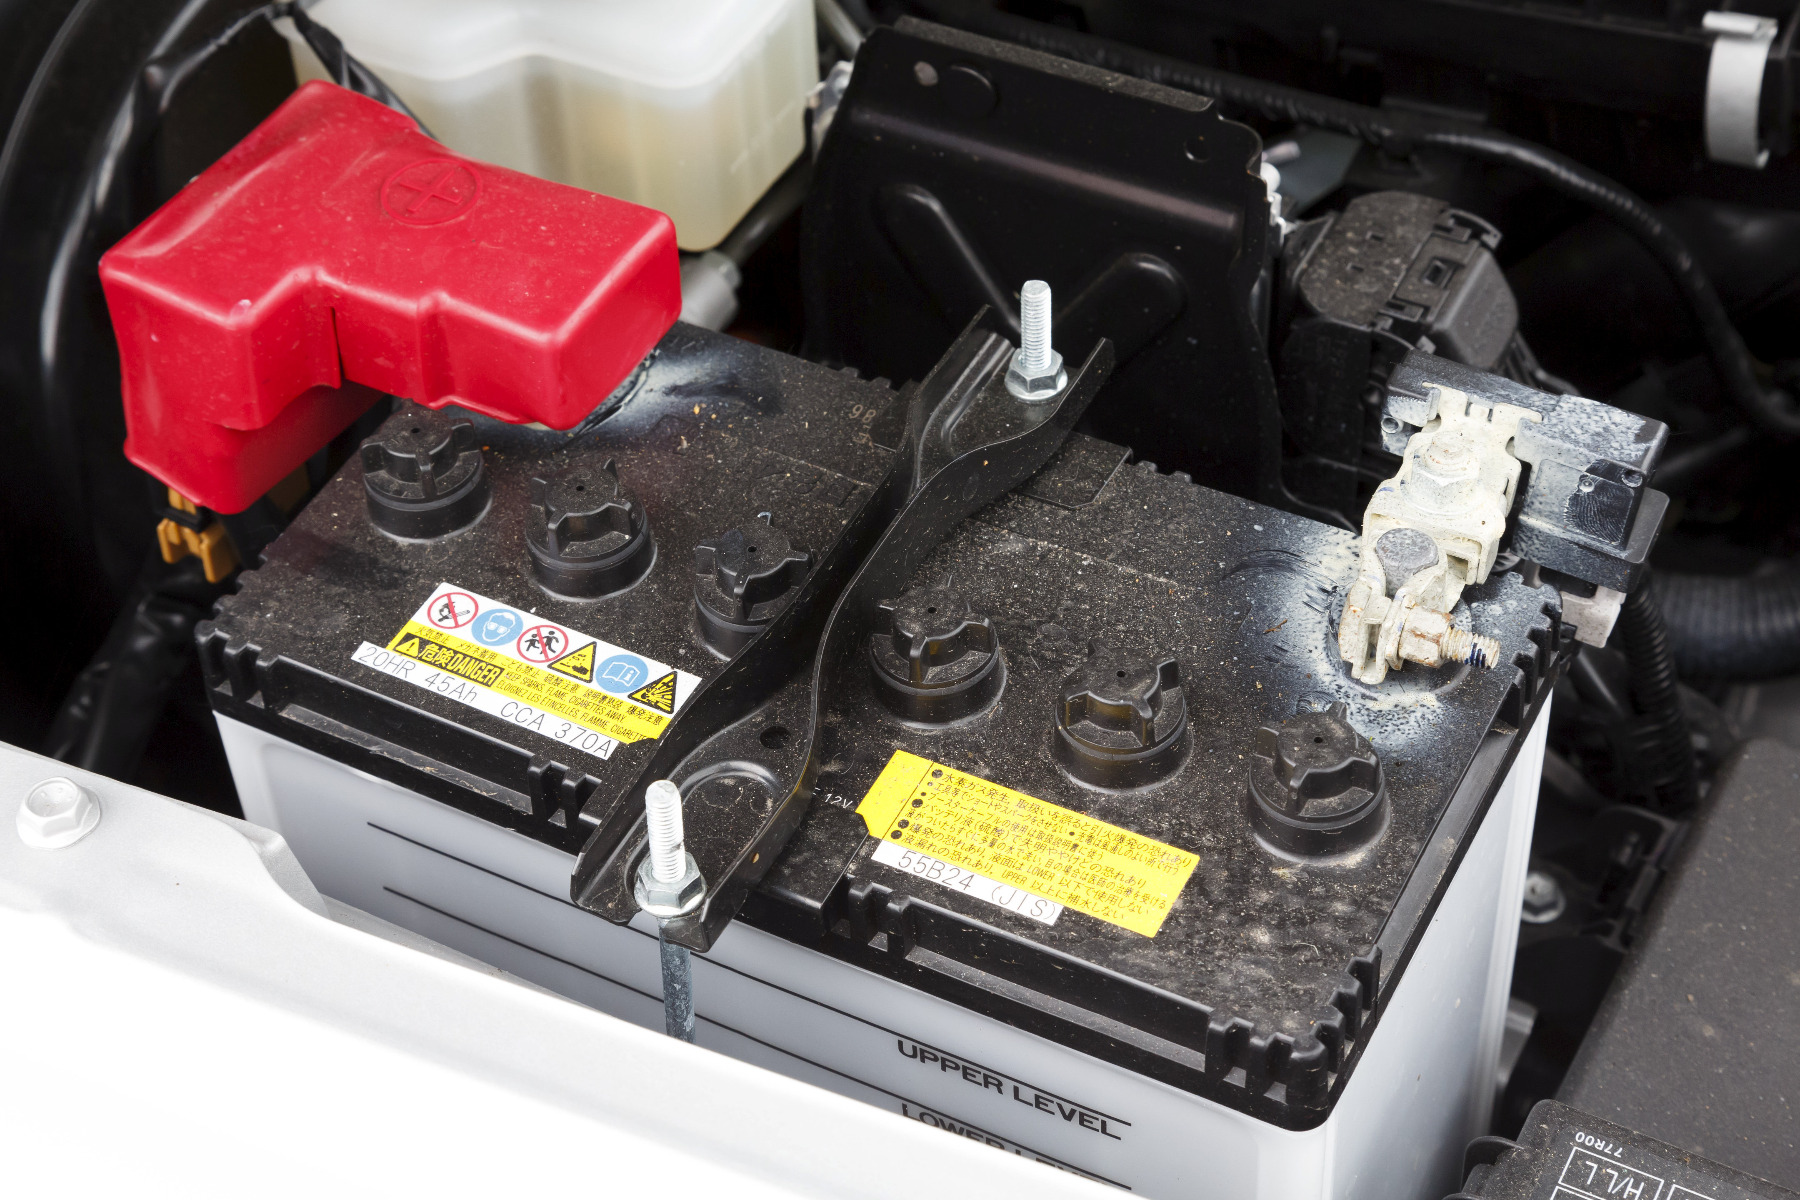 where is the best source of car batteries uk